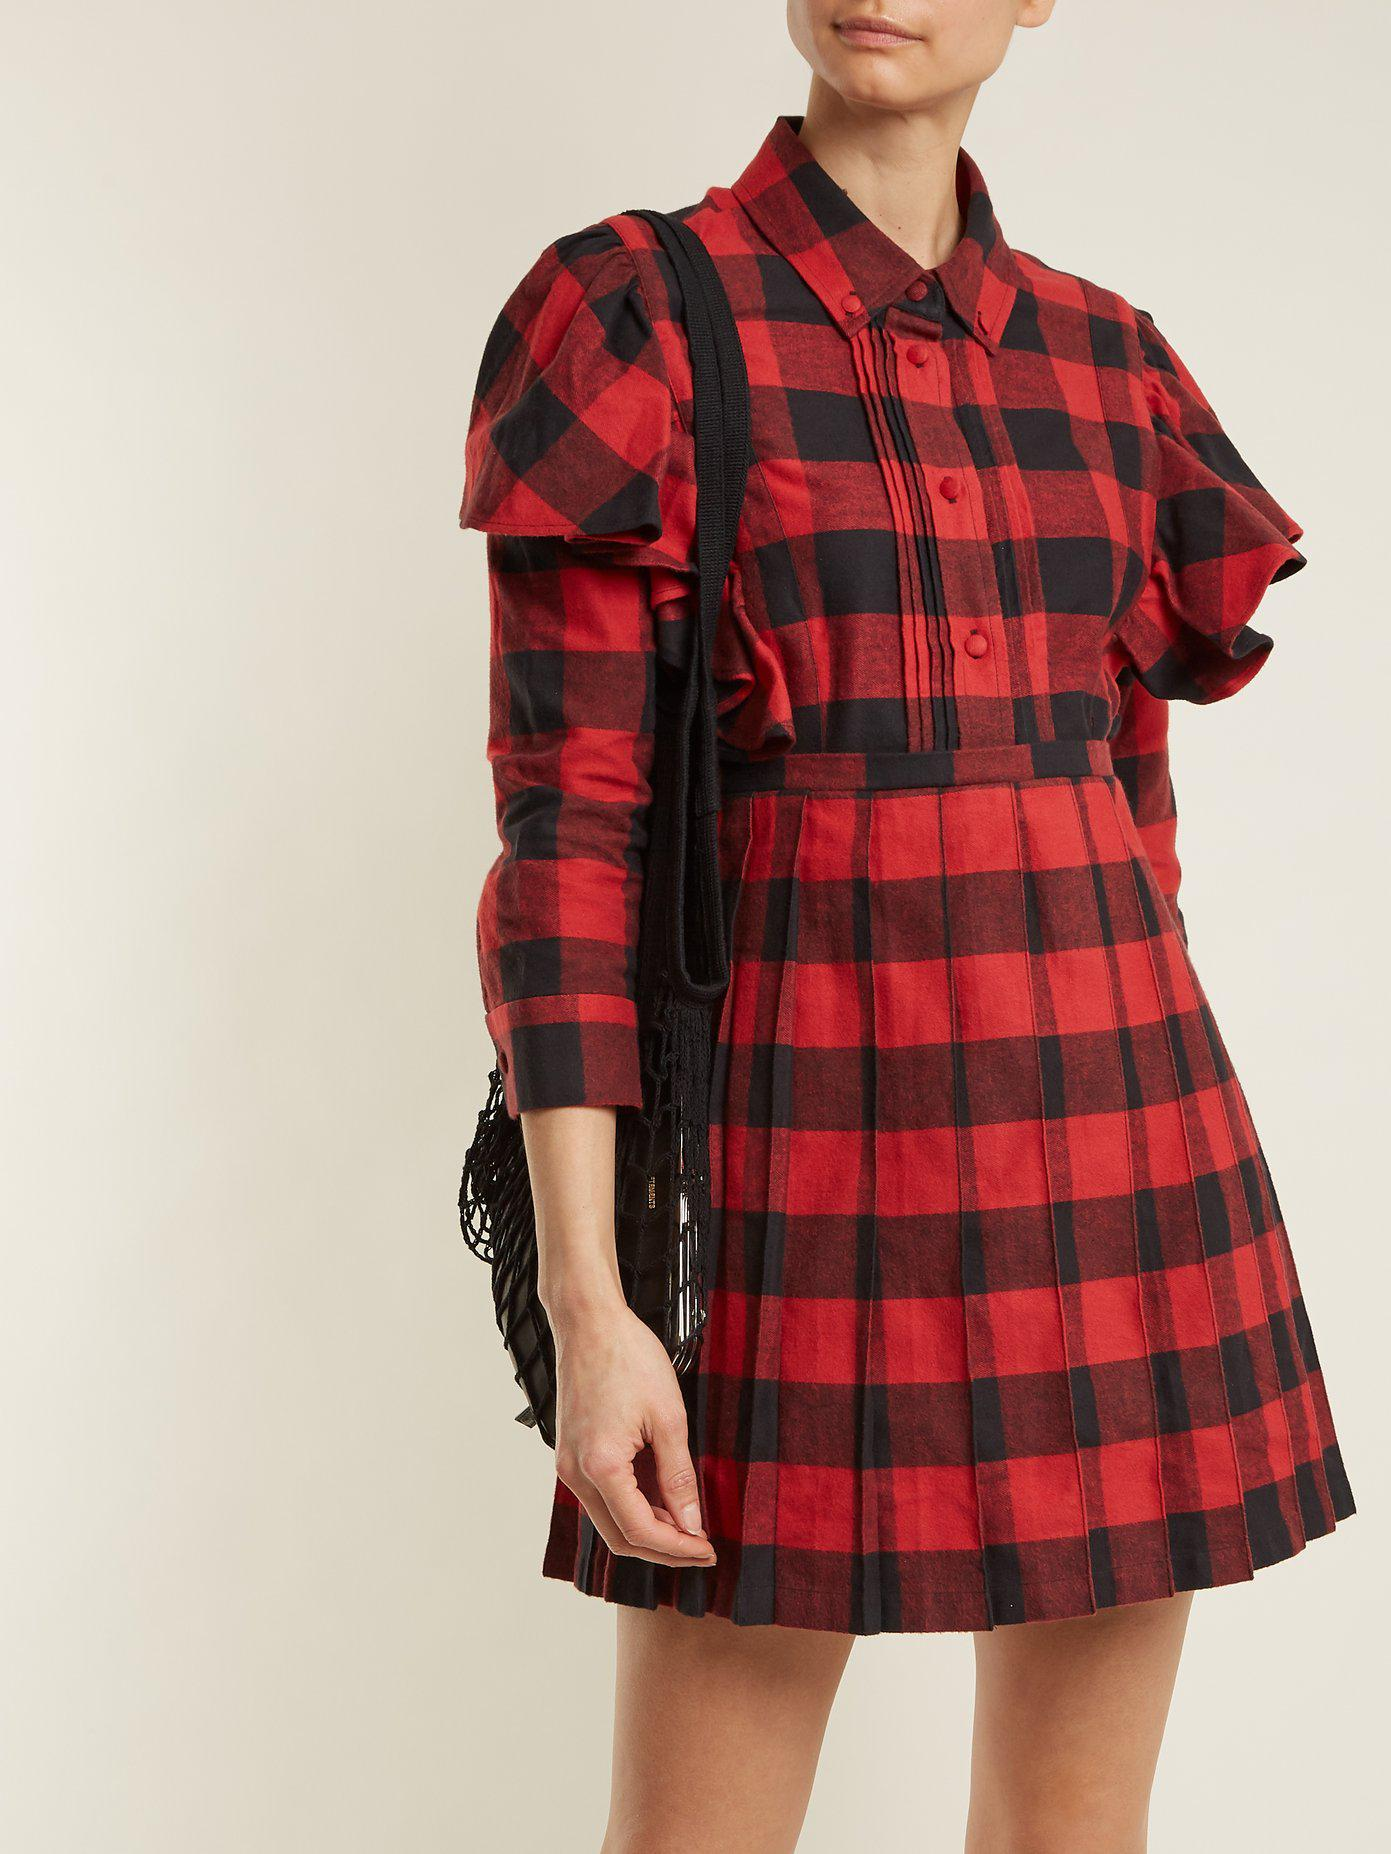 Point-collar checked cotton-flannel dress VETEMENTS Affordable Low Price For Sale fhB45P